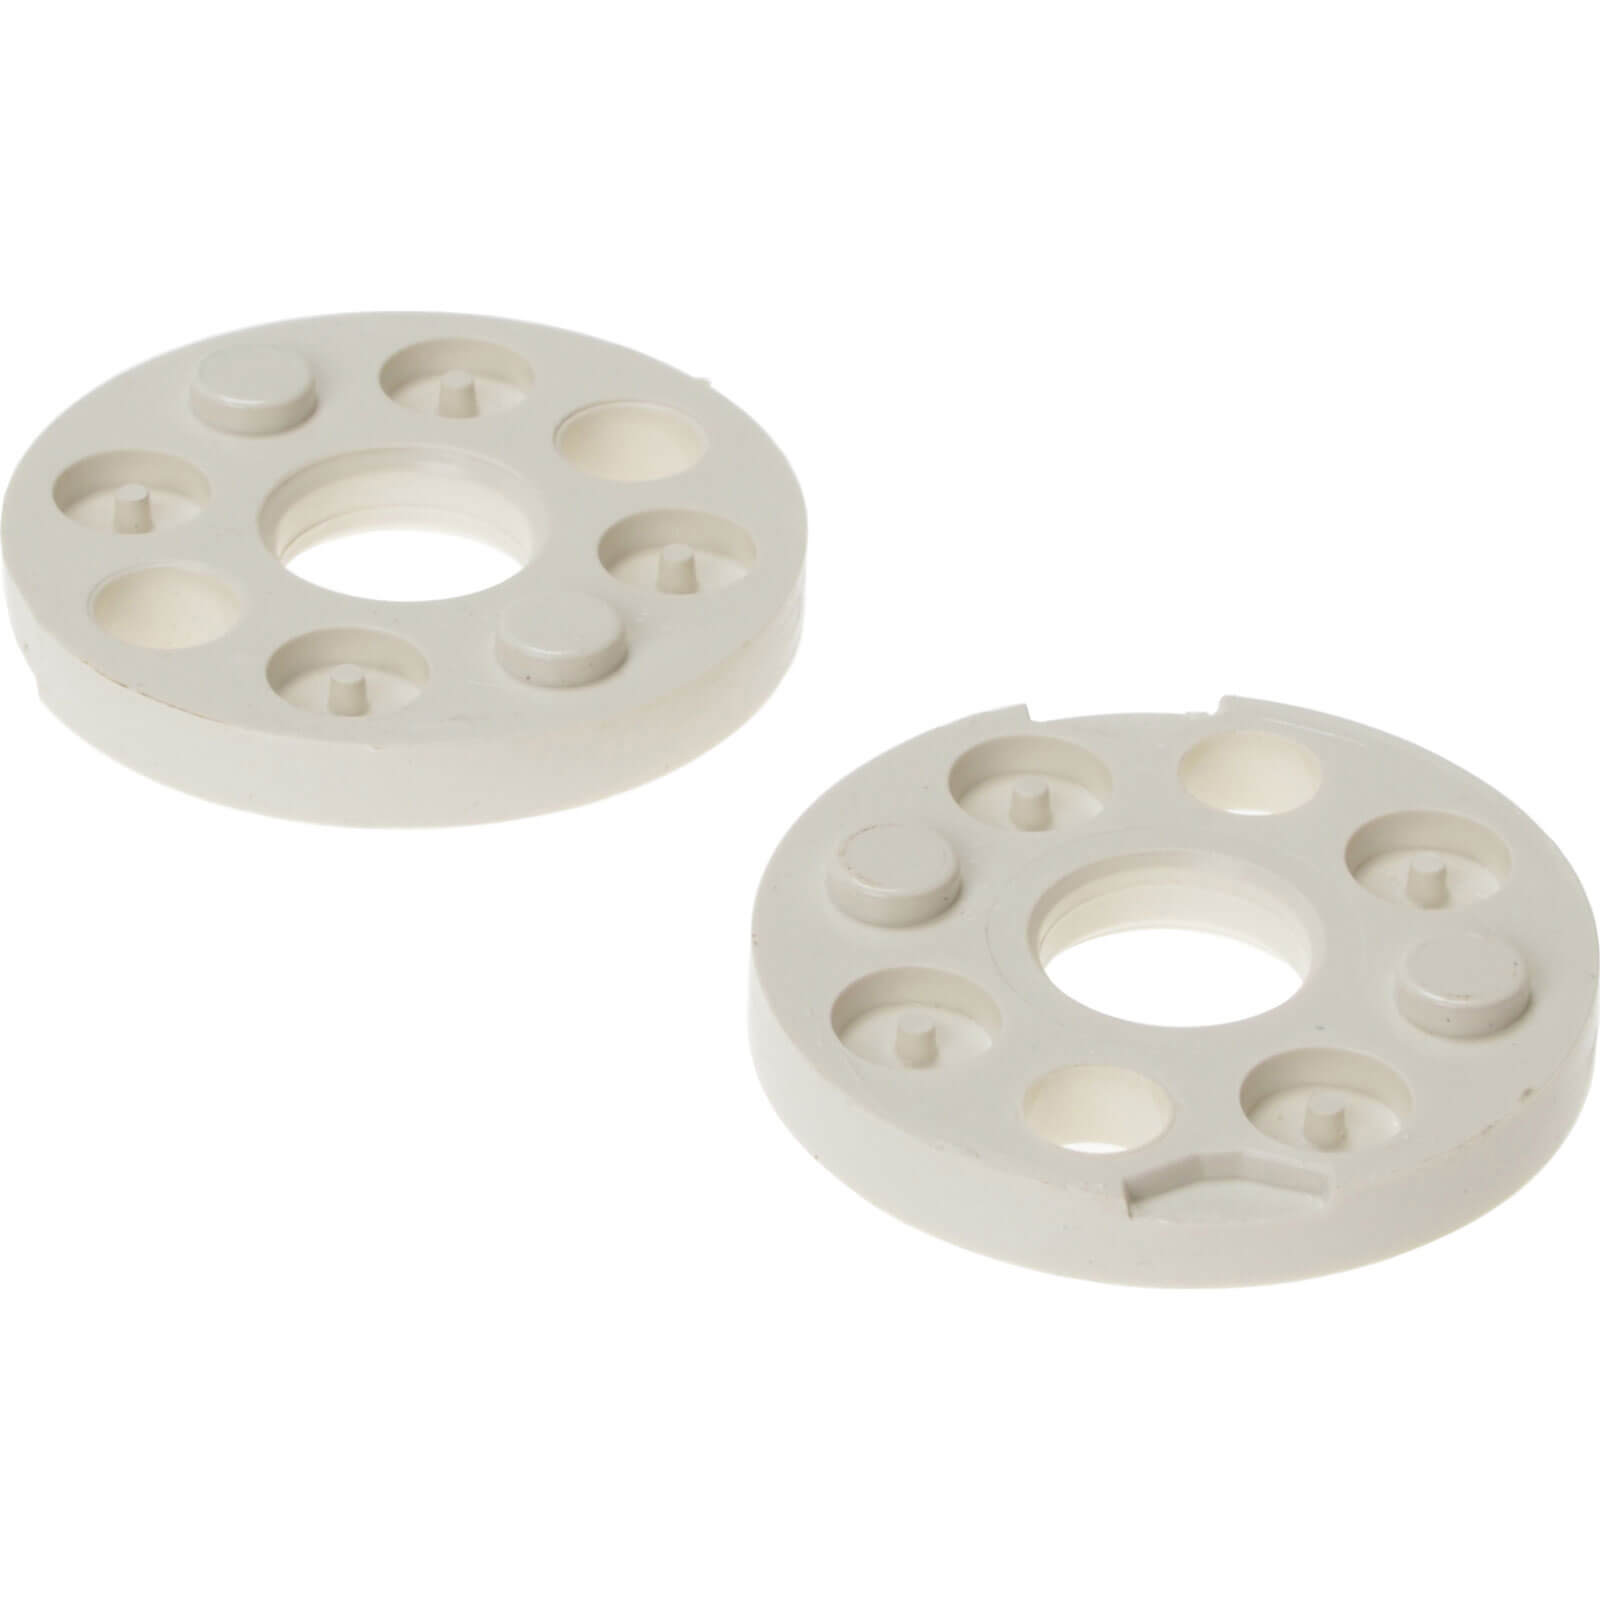 ALM Manufacturing FL170/FL182 Blade Height Spacers Compares to Flymo FLY017